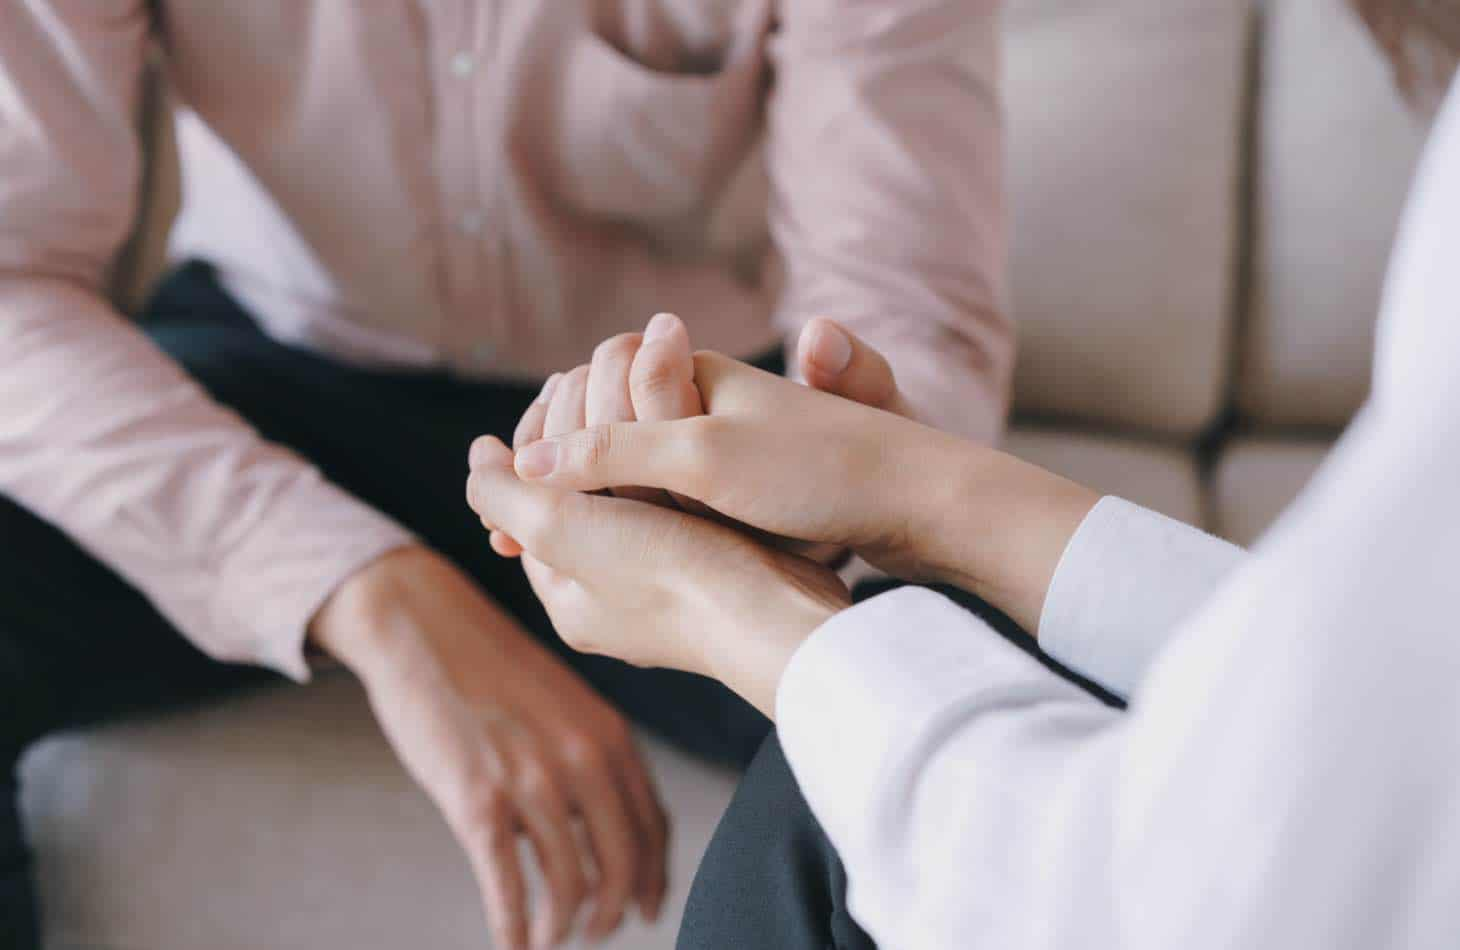 Therapist Holding Hand Of Client Dealing With Dual Diagnosis And Alcohol Addiction